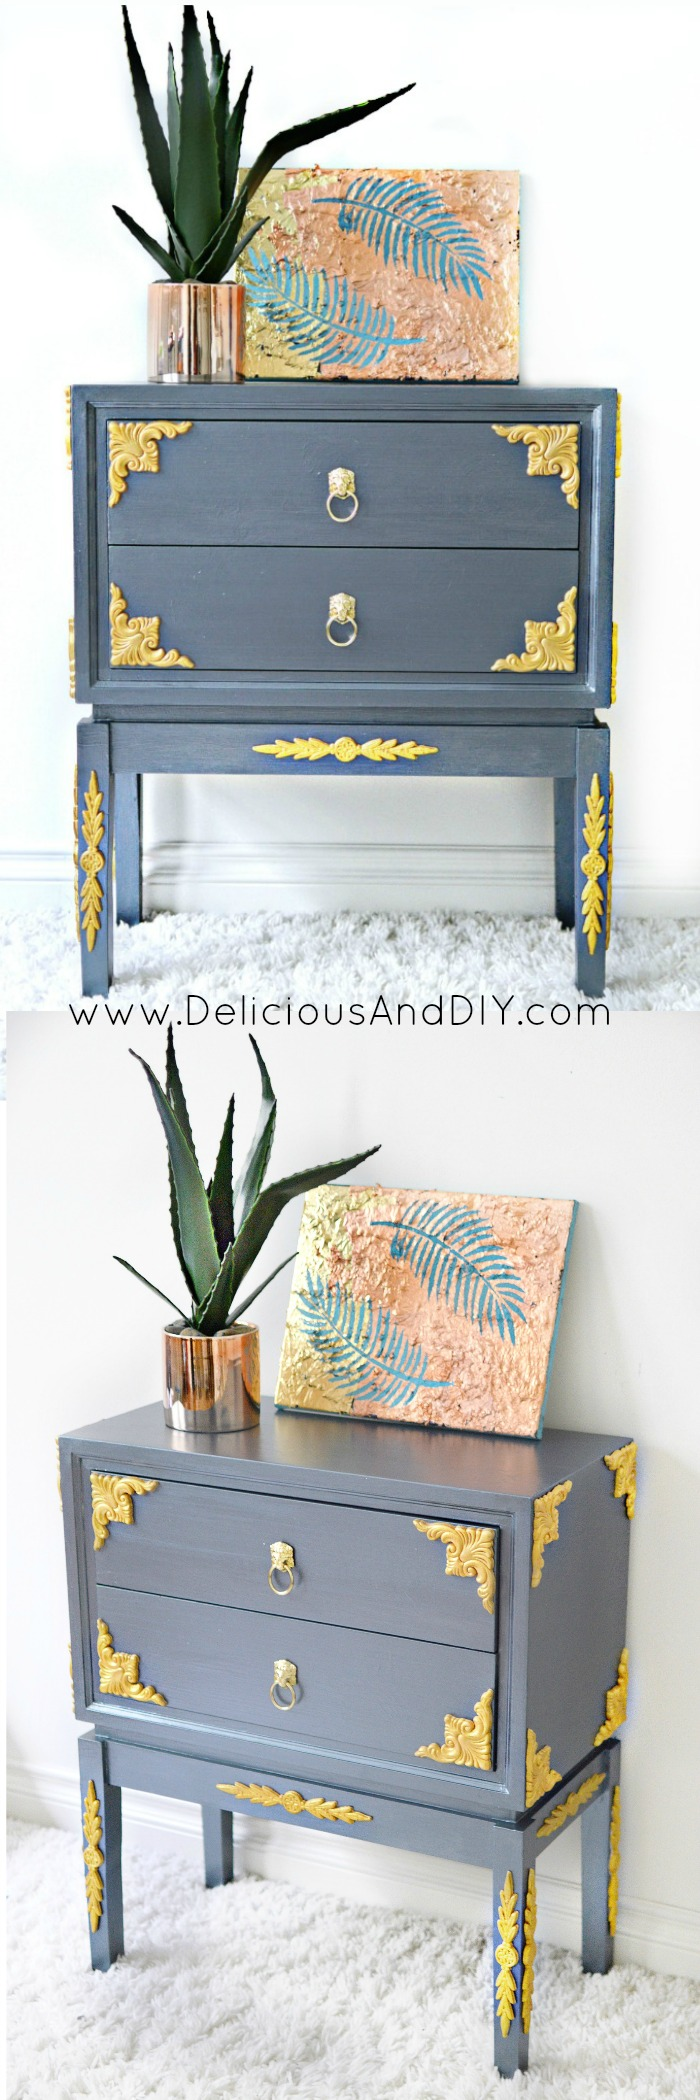 Create this gorgeous Table Makeover using Wood Appliqués| DIY Painted Furniture Makeover| Furniture Makeover using Wood Appliques| Grey Furniture Makeover| DIY Table Makeover Ideas| Before and After Thrift Store Furniture Makeover